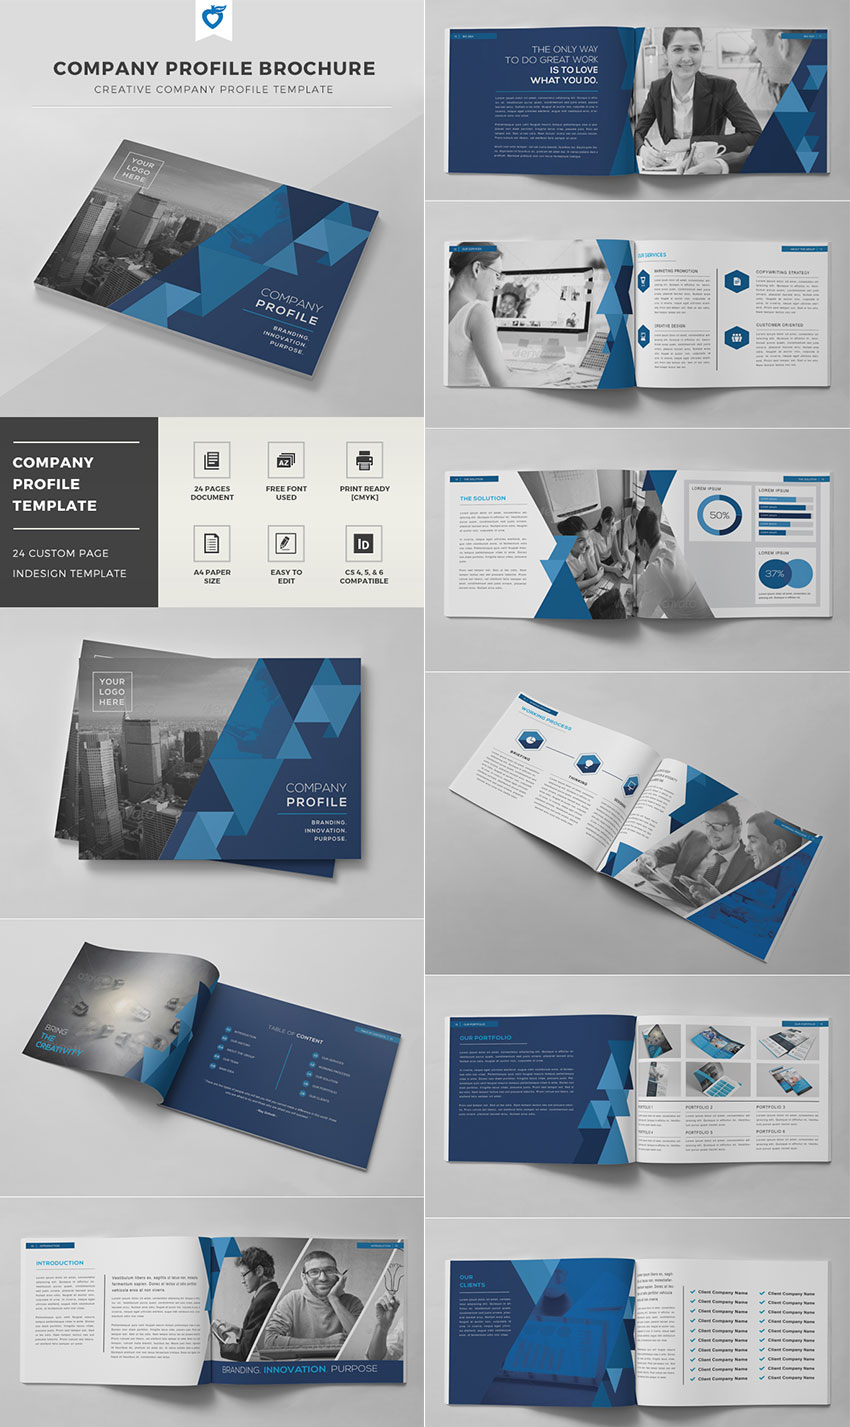 20 best indesign brochure templates for creative for Company brochure template free